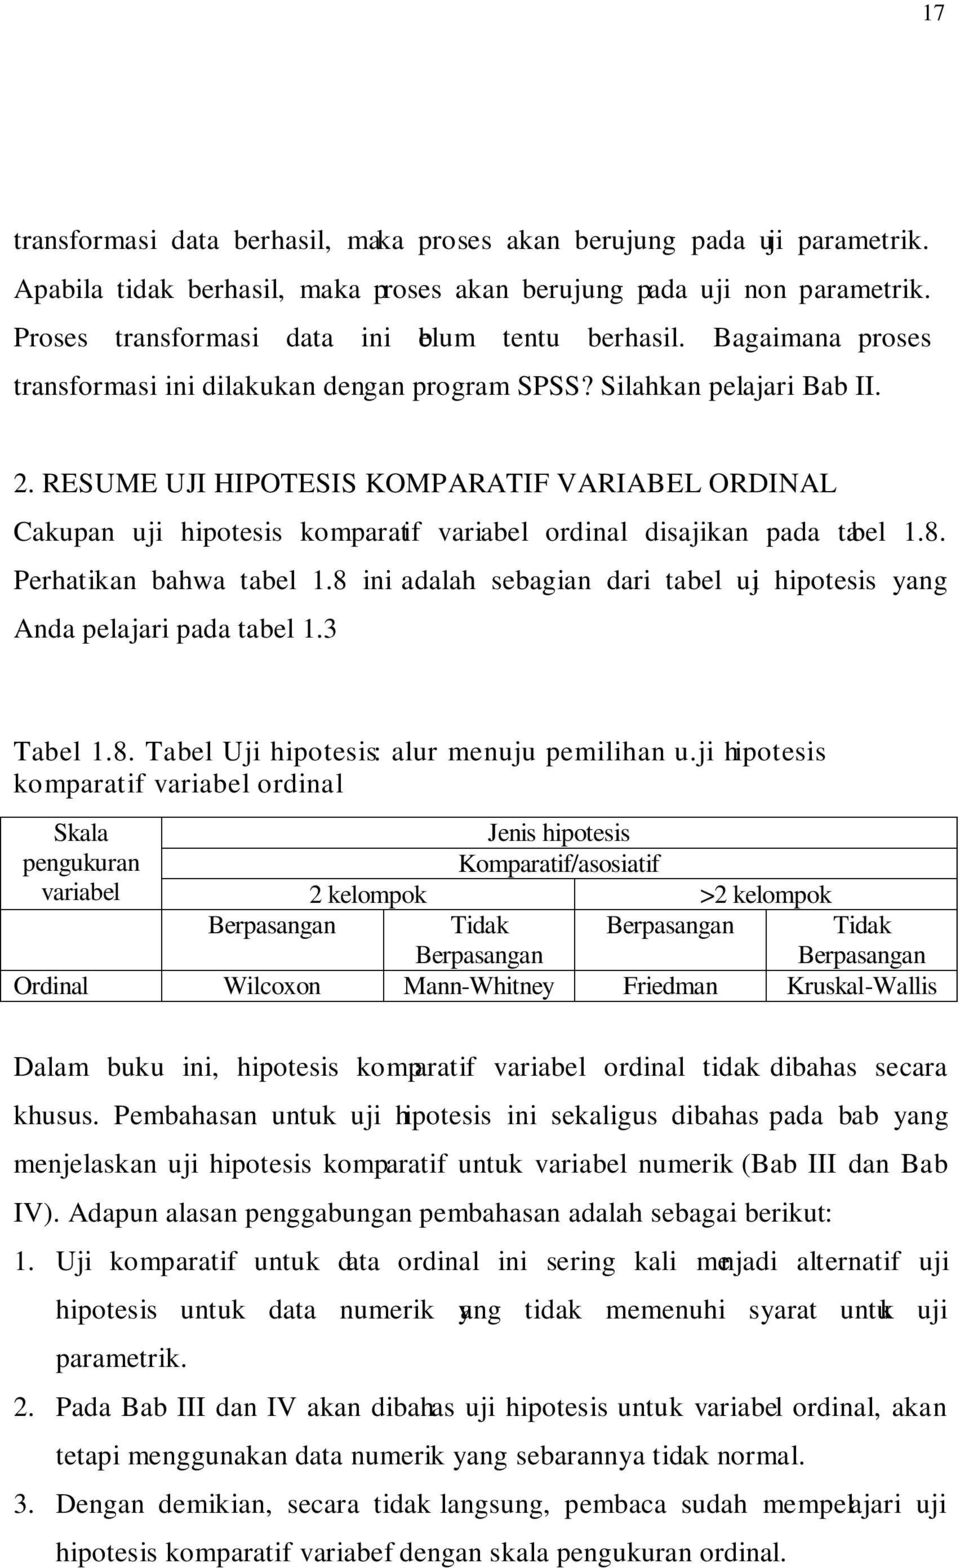 RESUME UJI HIPOTESIS KOMPARATIF VARIABEL ORDINAL Cakupan uji hipotesis komparatif variabel ordinal disajikan pada tabel 1.8. Perhatikan bahwa tabel 1.